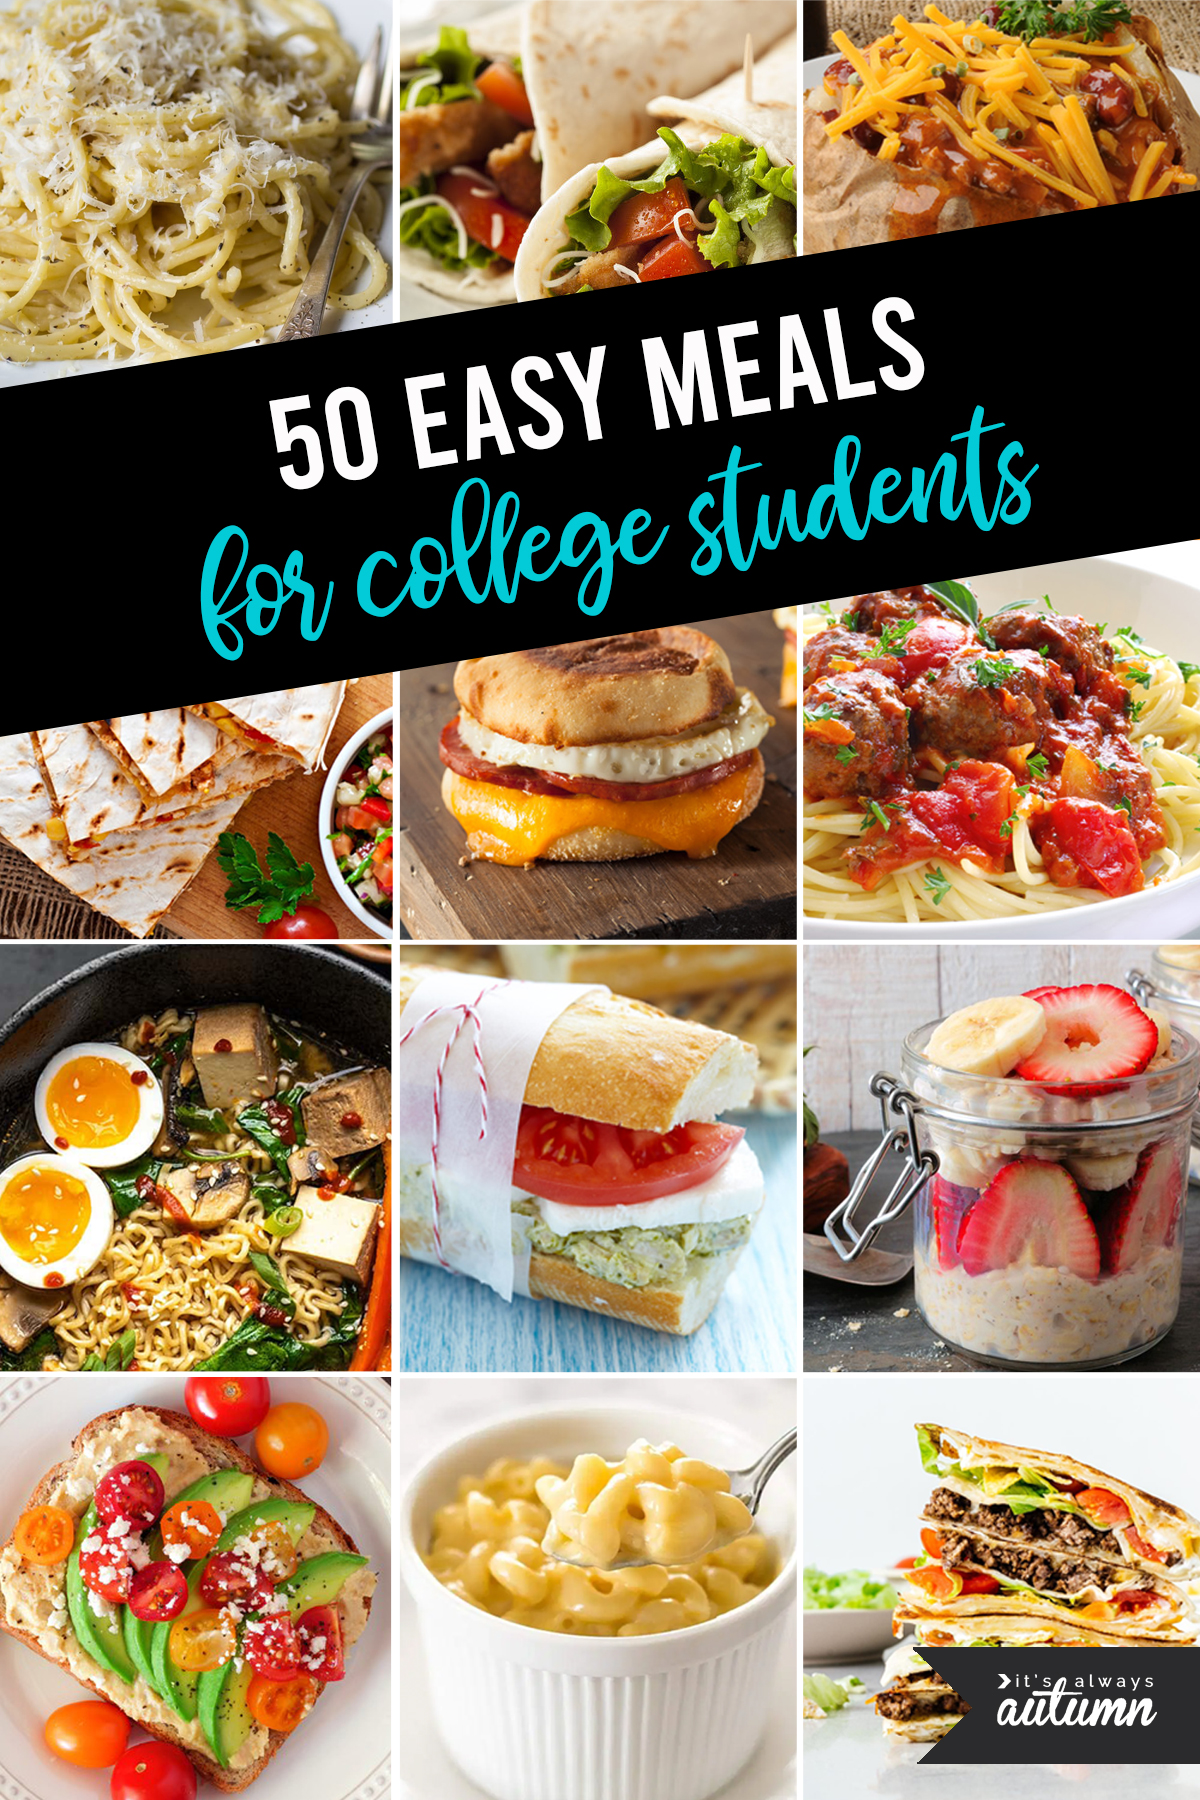 Collage pictures of easy meals; text: 50 easy meals for college students